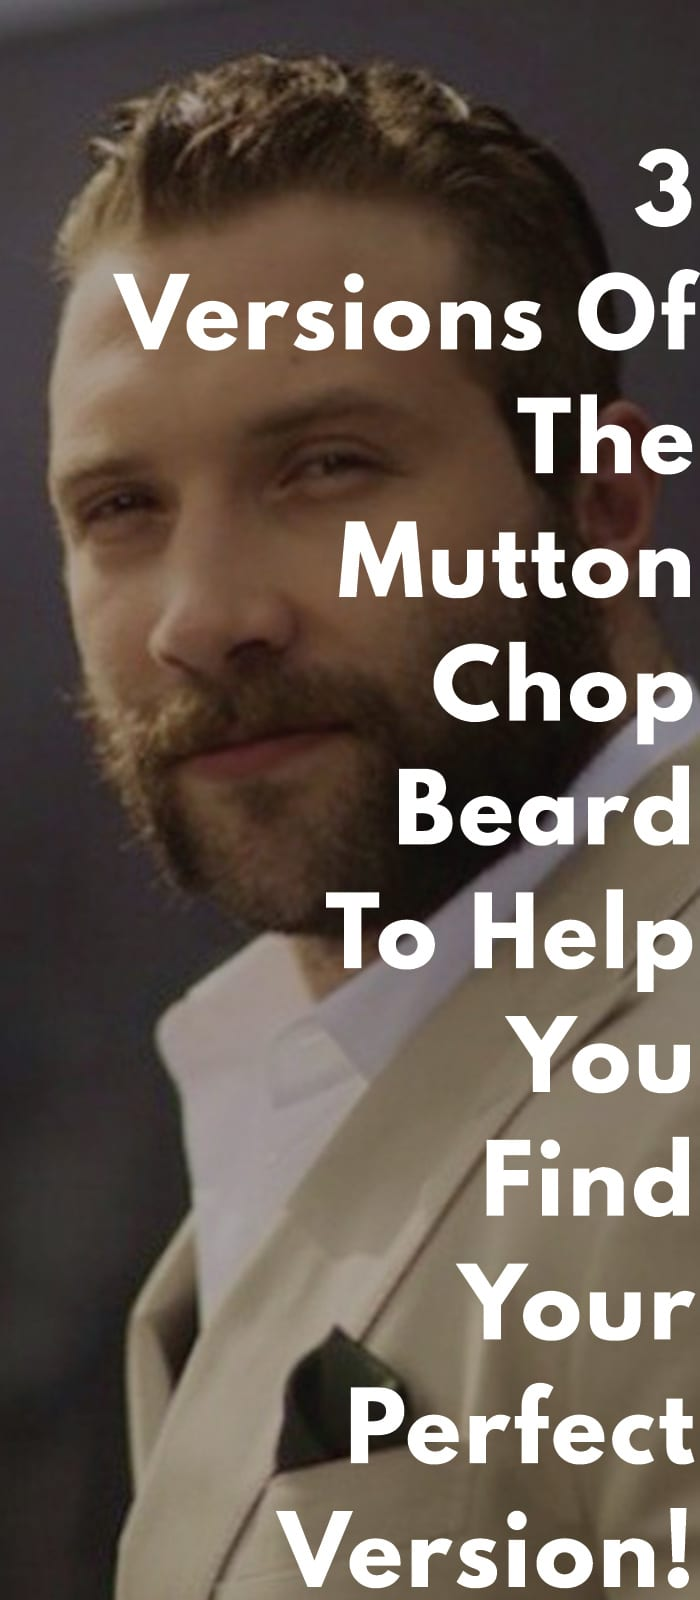 3-Versions-Of-The-Mutton-Chop-Beard-To-Help-You-Find-Your-Perfect-Version!..